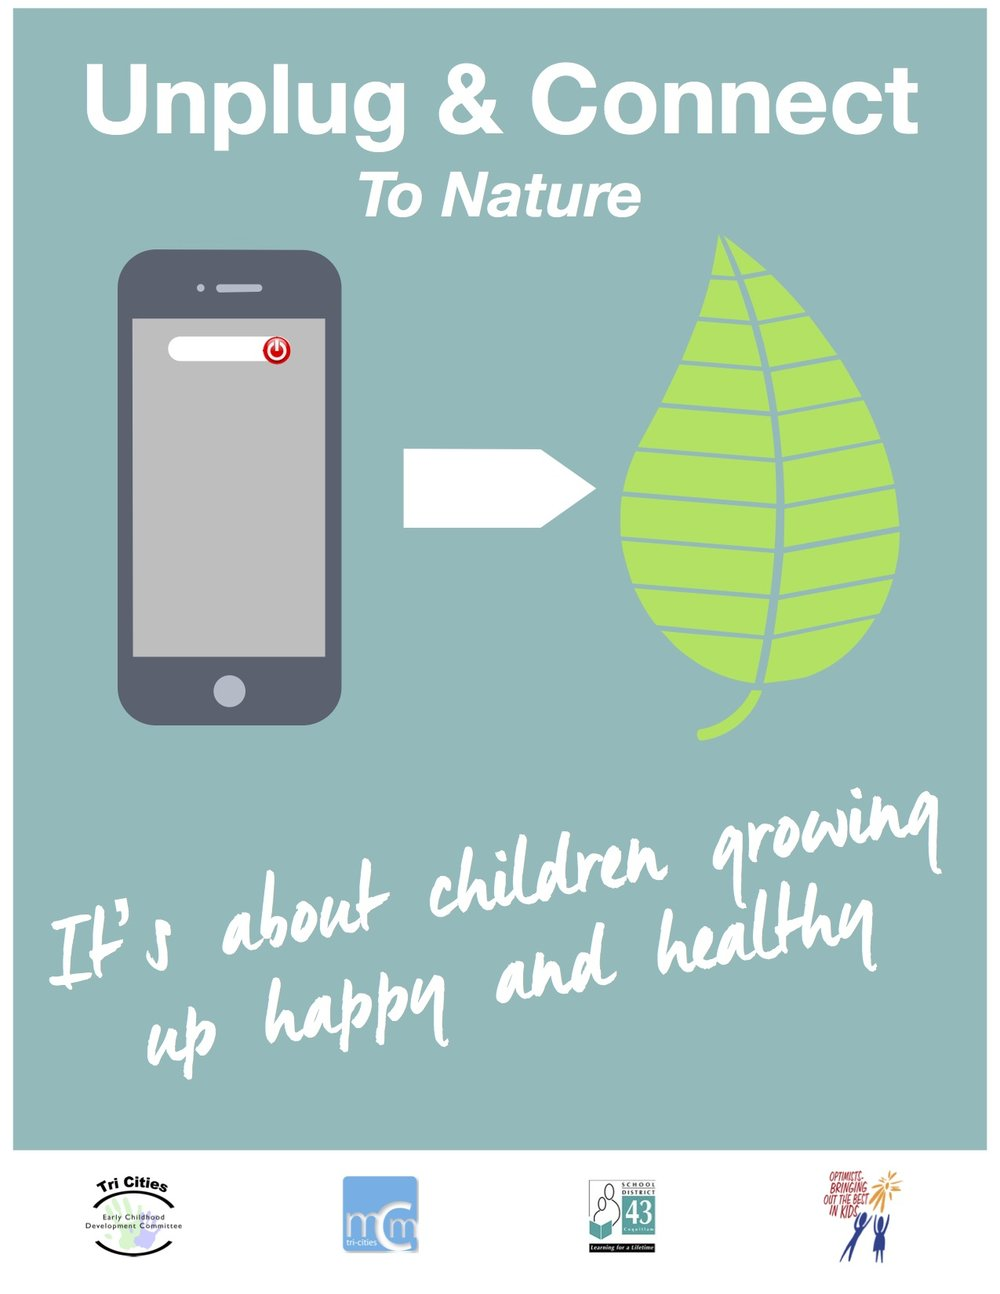 Click  here to learn more about the importance of connecting to nature.